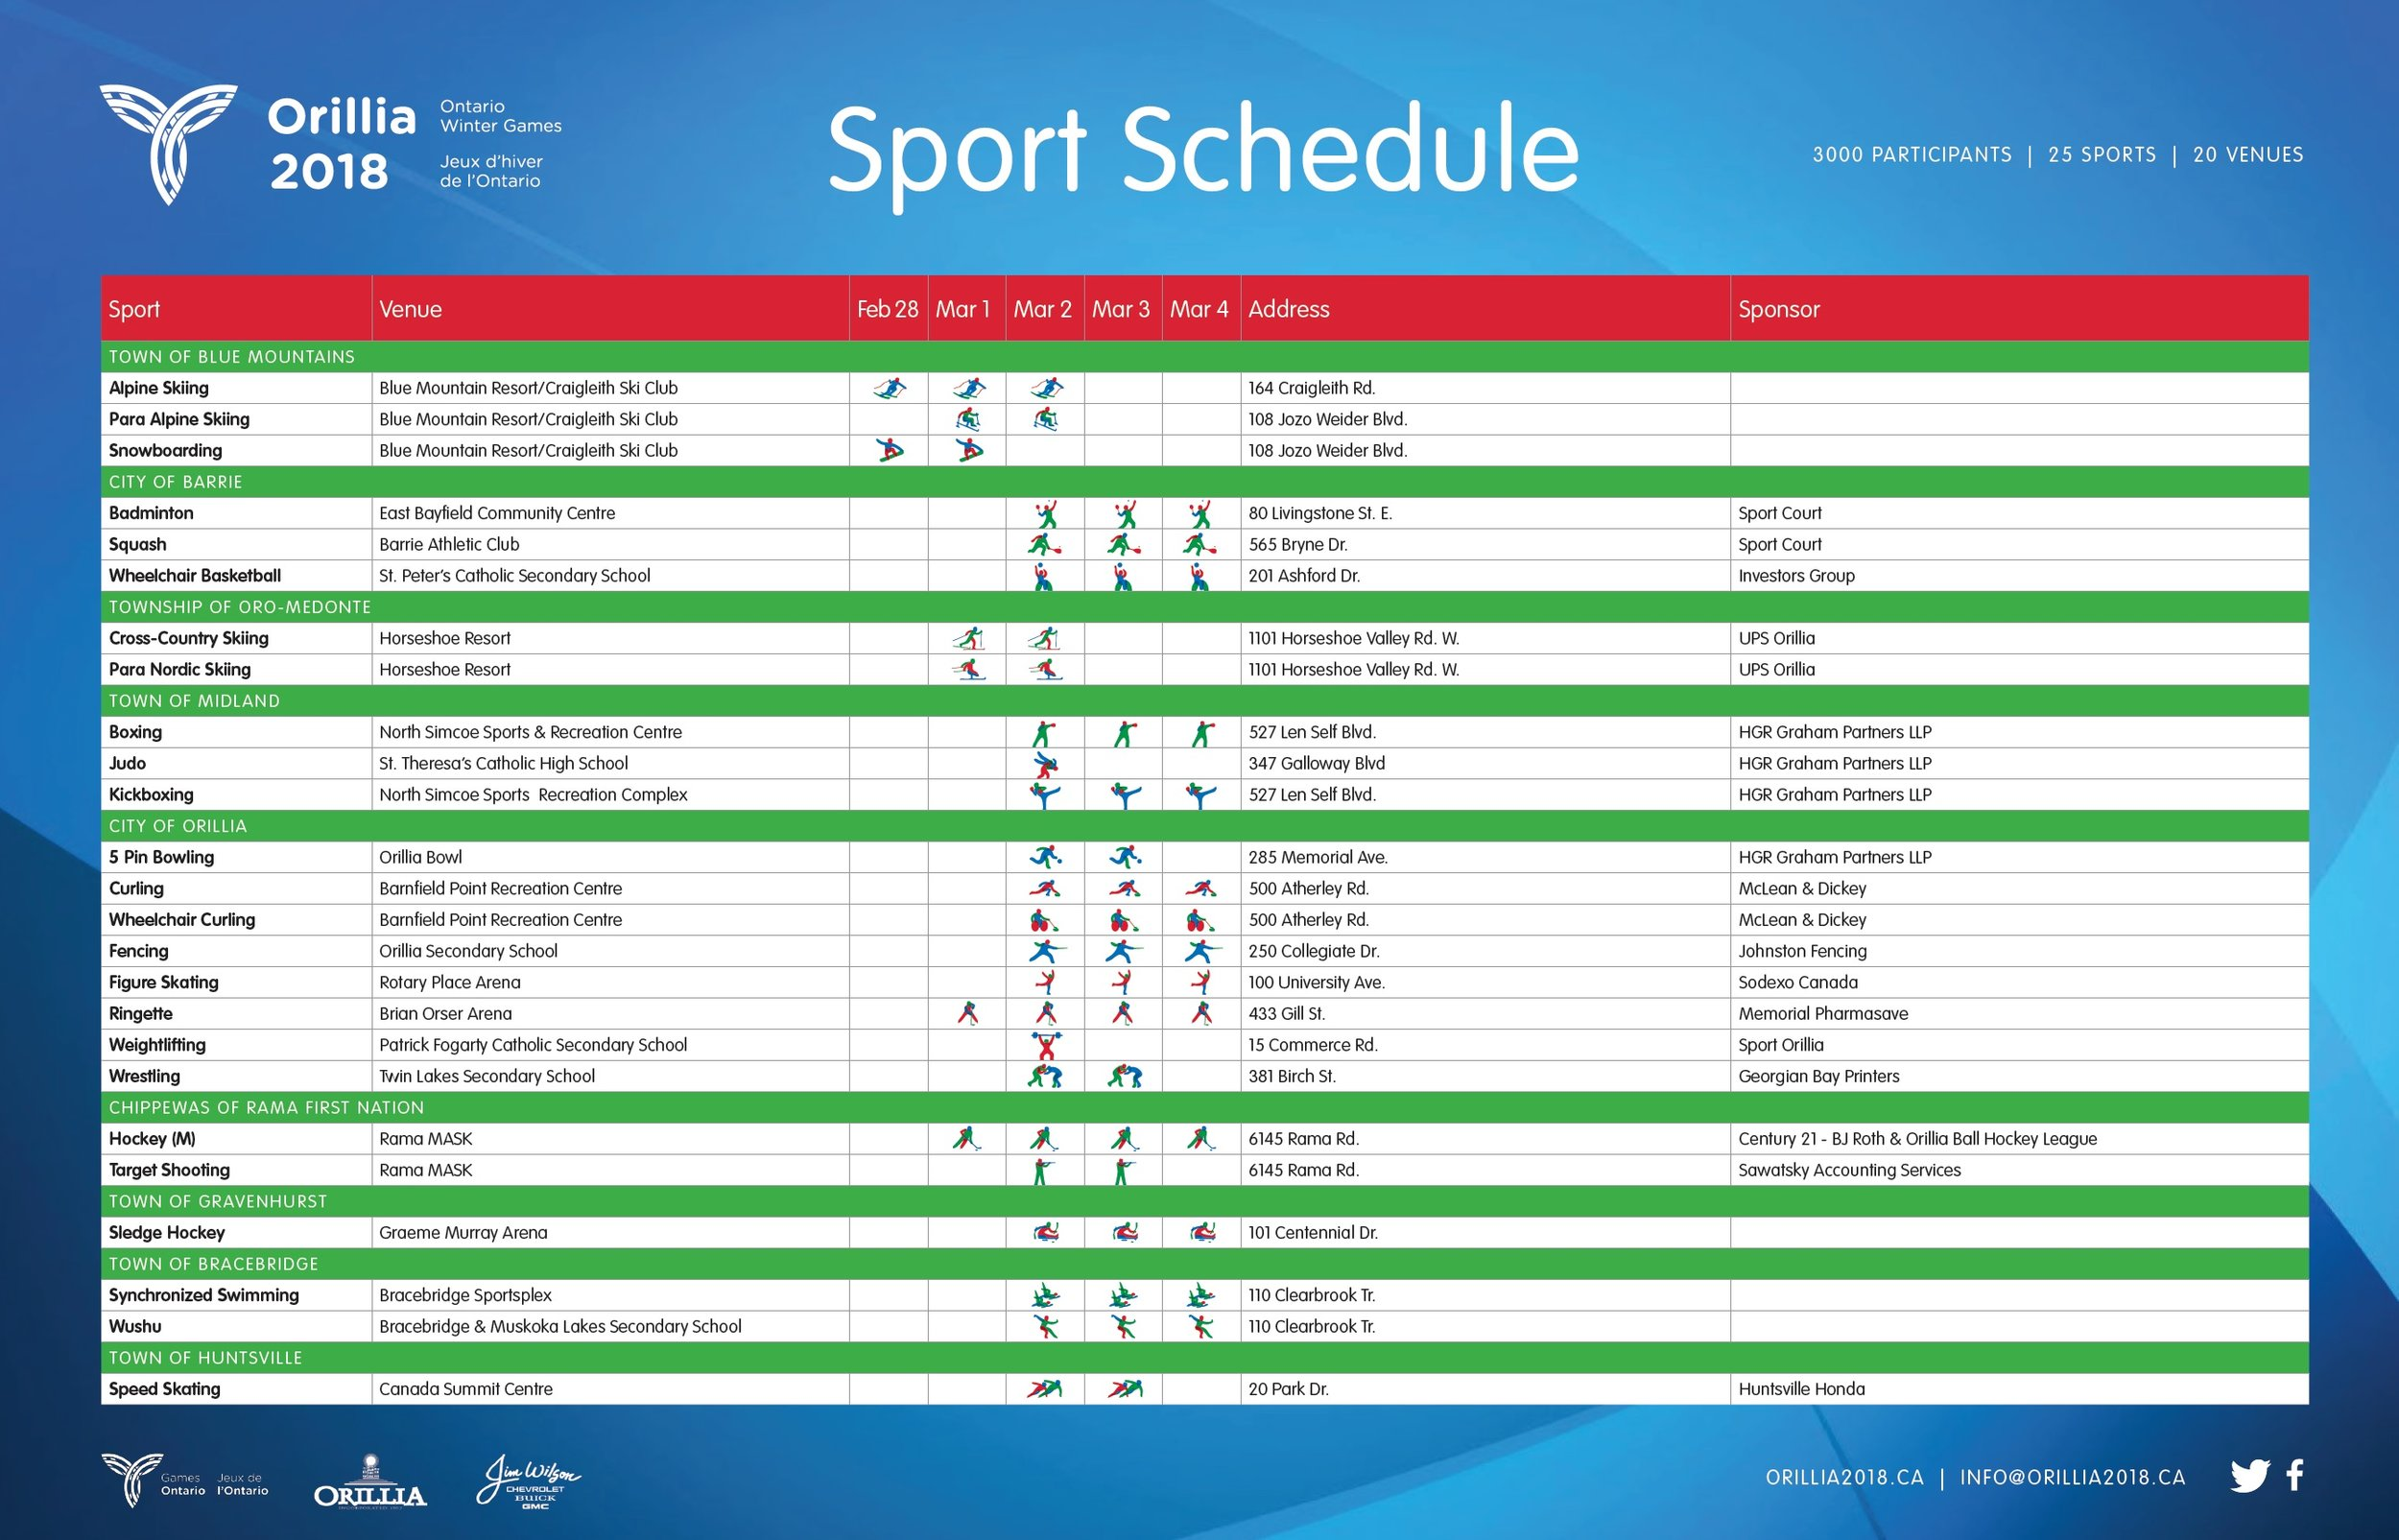 ontario-winter-games-wushu-2018-schedule.jpg